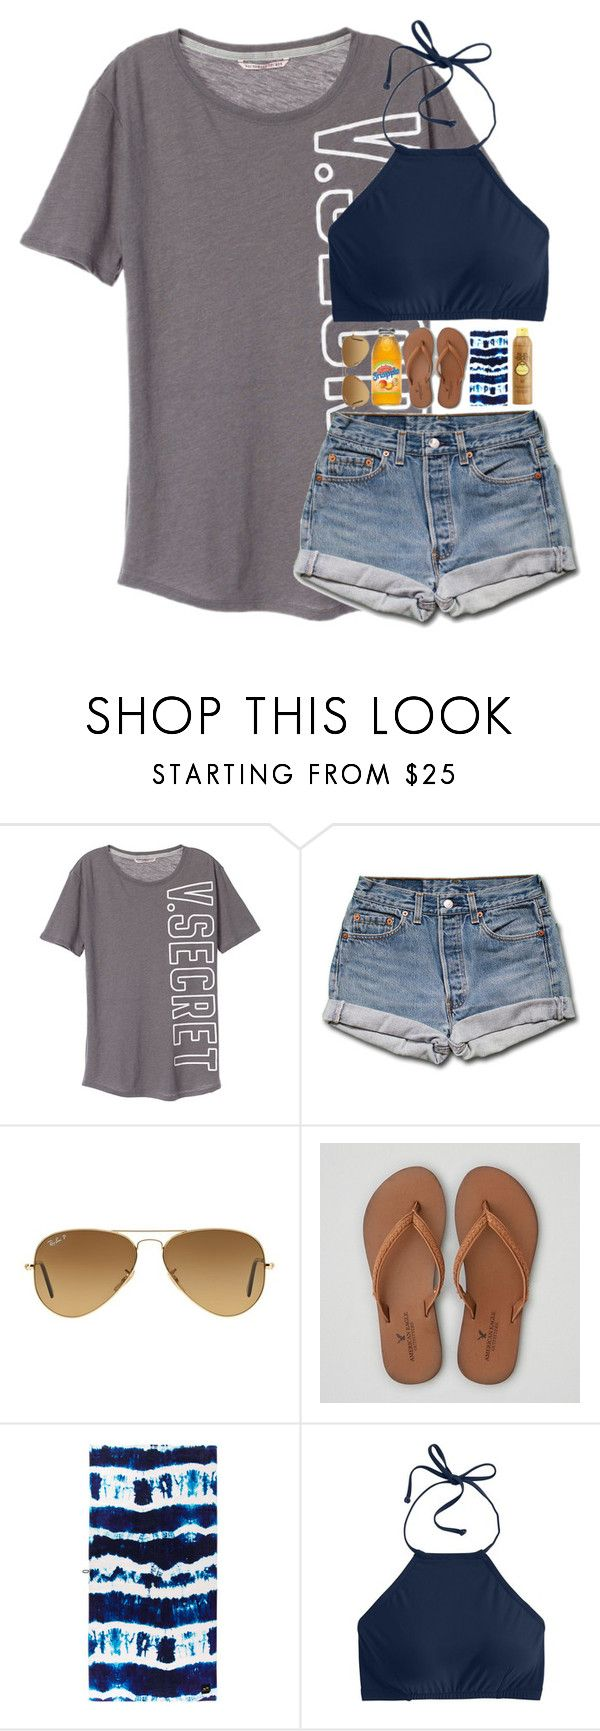 """""""Going to a pool party for my Uncle's step daughter"""" by abigailcdunn ❤ liked on Polyvore featuring Victoria's Secret, Ray-Ban, American Eagle Outfitters, Sun Bum and J.Crew"""